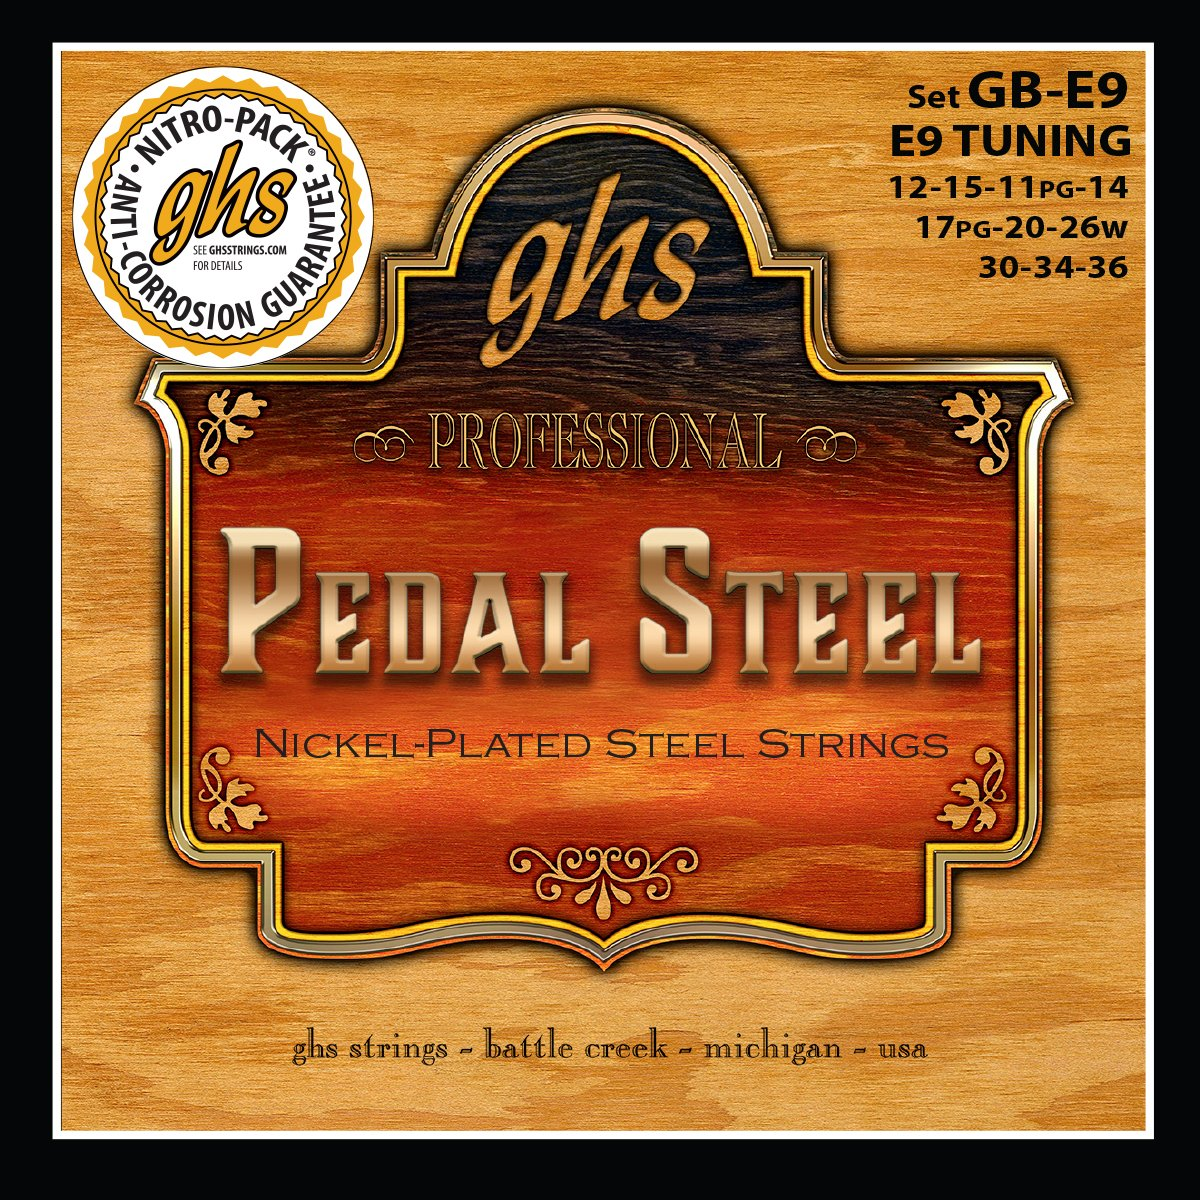 GHS Pedal Steel Guitar E9 Tuning Boomers (GB-E9)